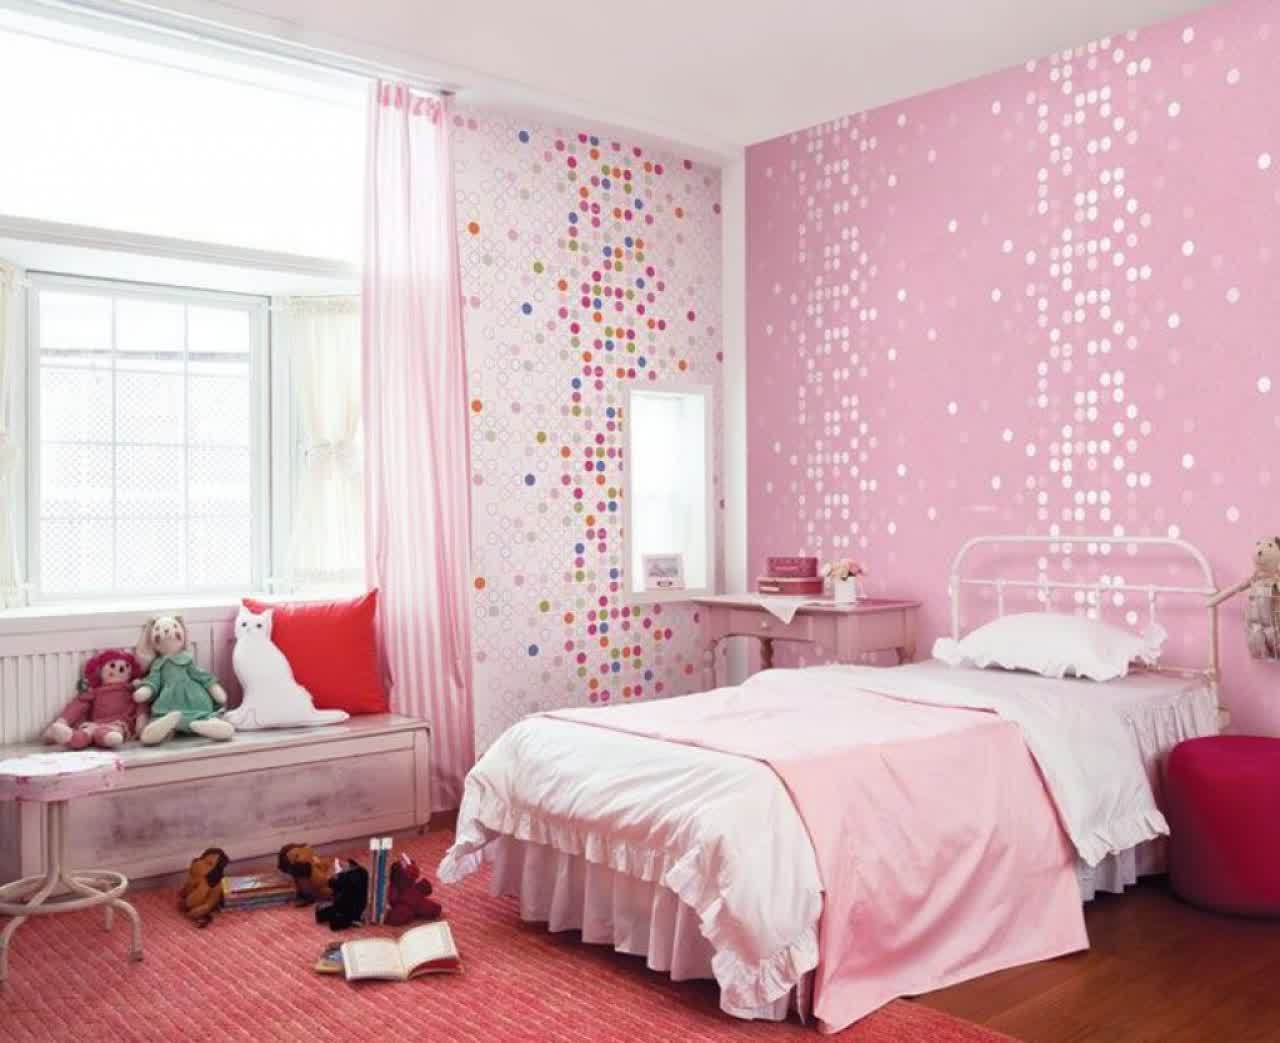 Girly bedroom decoration